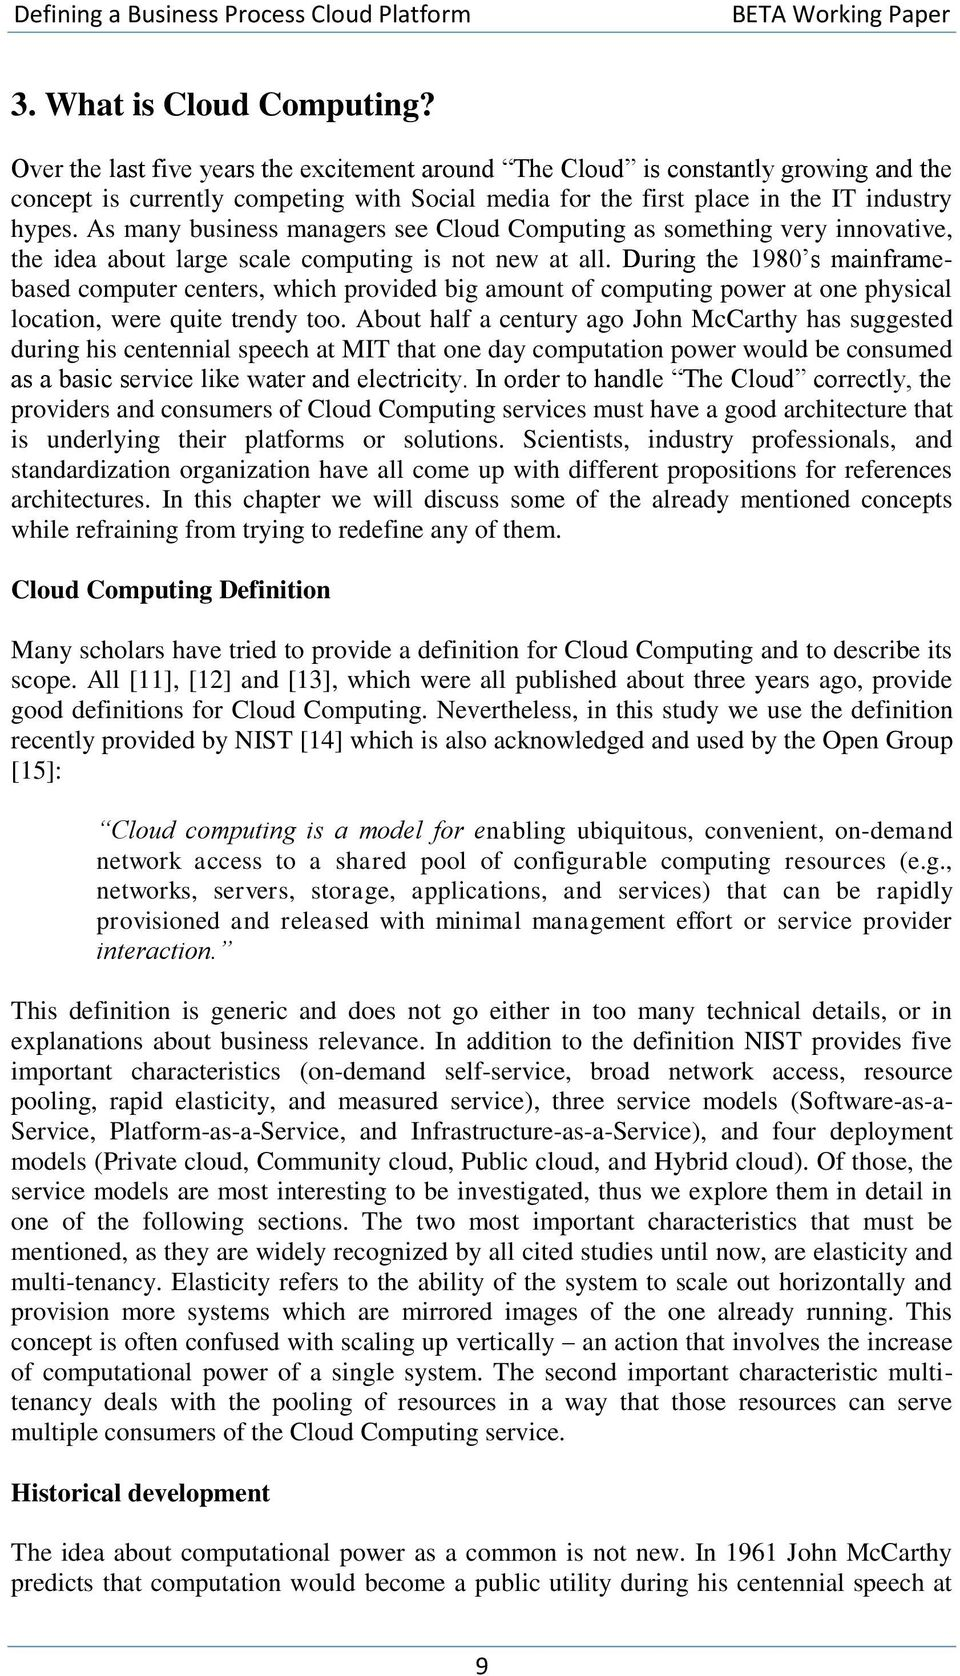 As many business managers see Cloud Computing as something very innovative, the idea about large scale computing is not new at all.